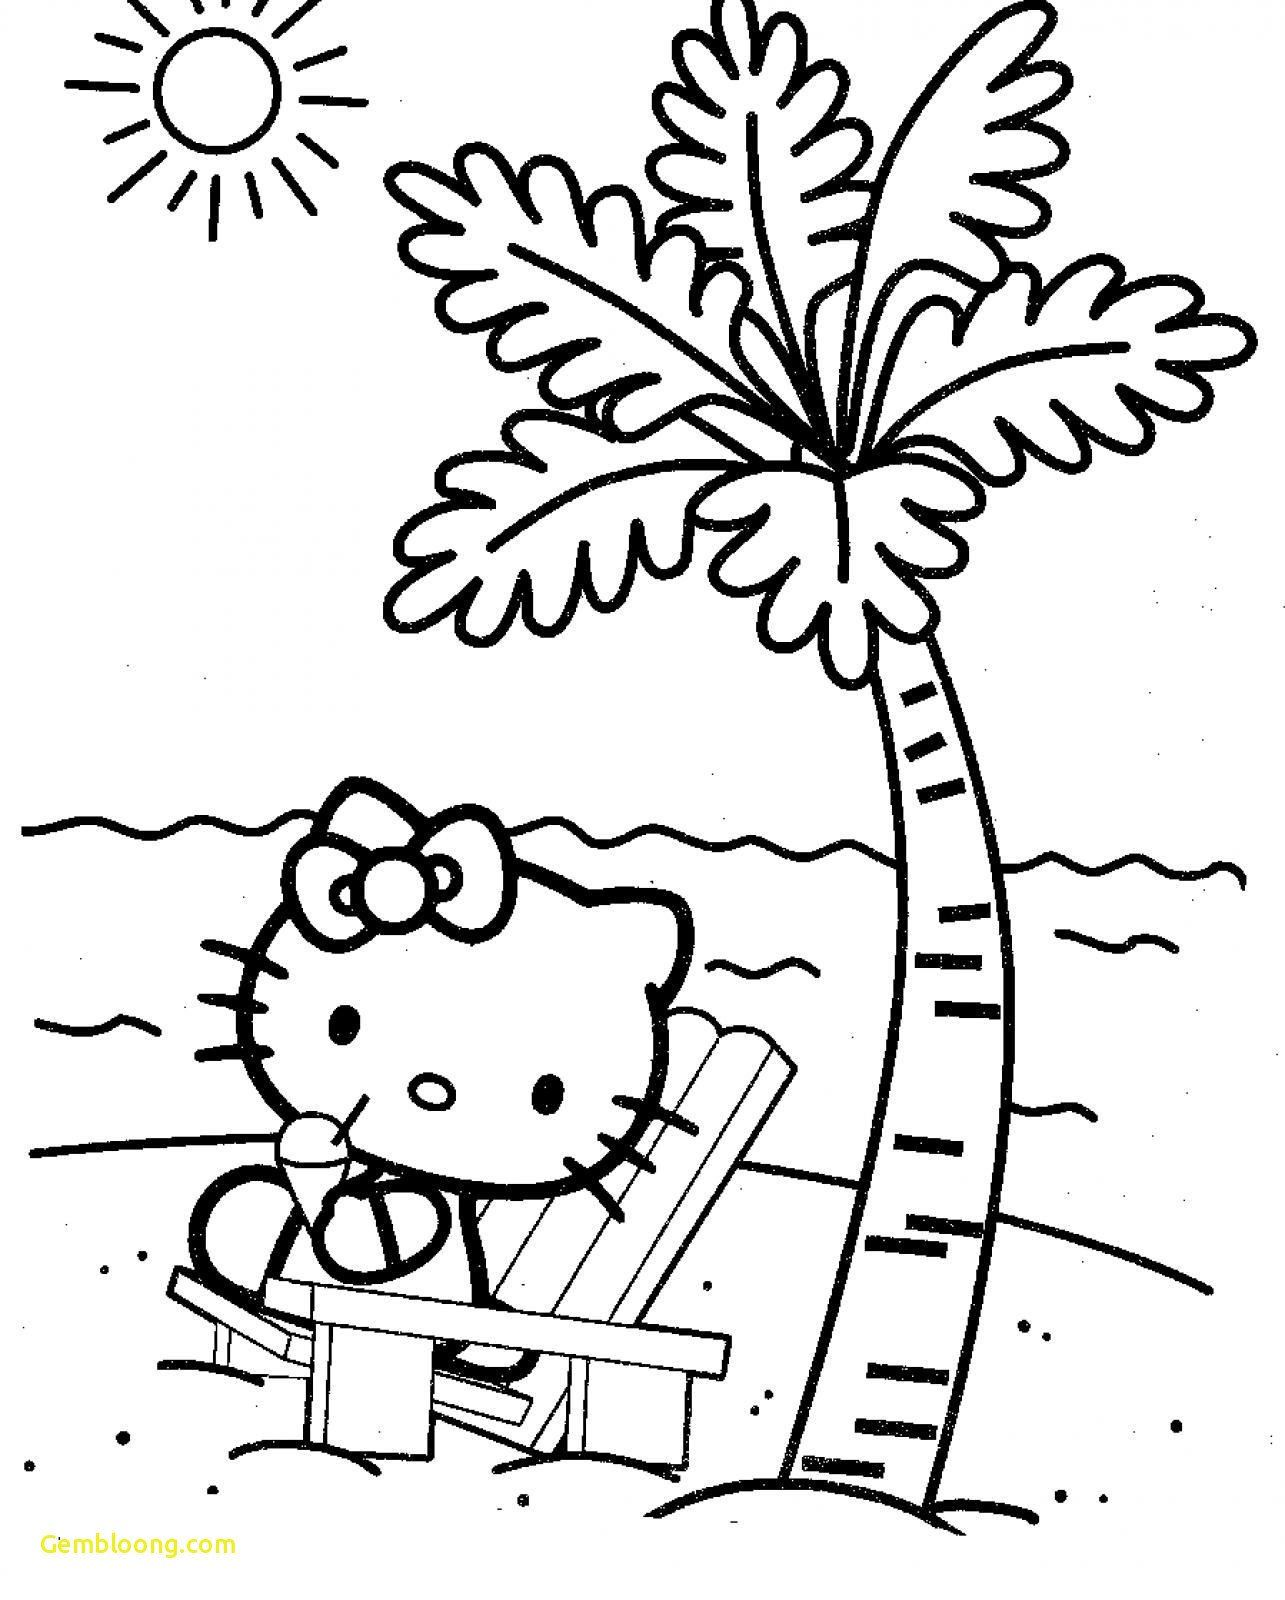 Hello Kitty Coloring Pages Free Printable Coloring Pages Hello Kitty Coloring Book Fres Hello Kitty Colouring Pages Hello Kitty Coloring Hello Kitty Printables